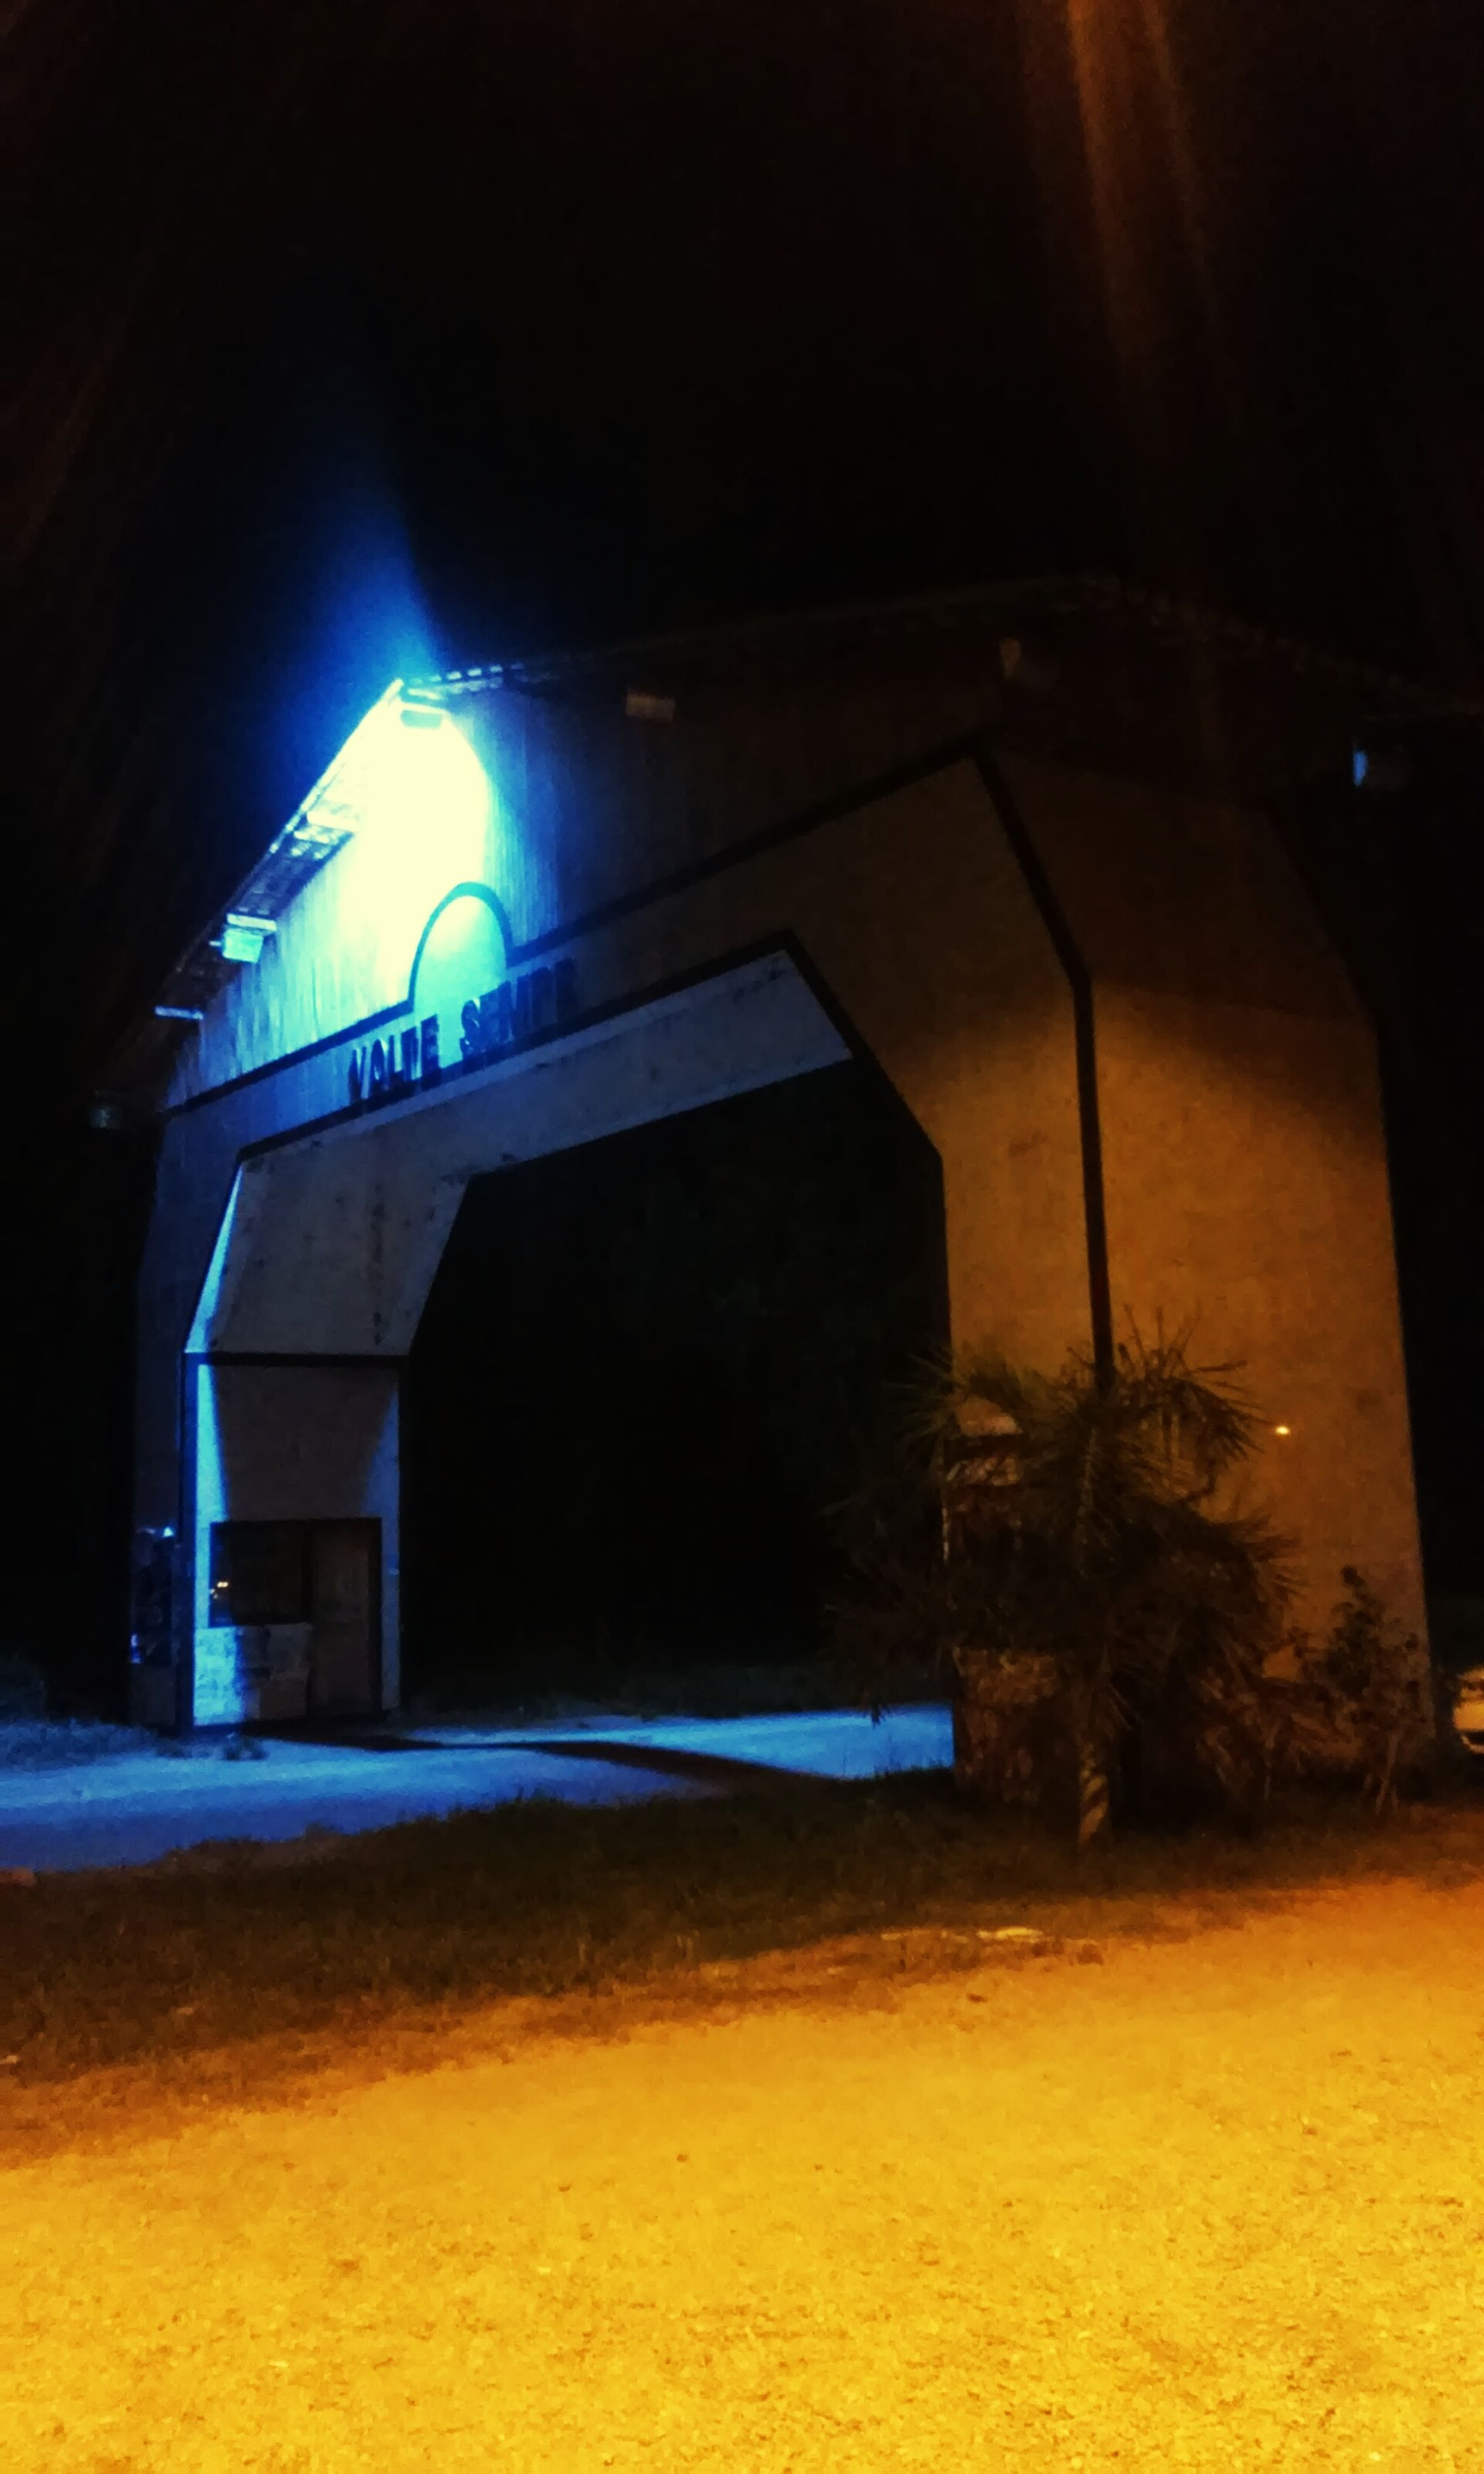 night, illuminated, lighting equipment, built structure, arch, no people, outdoors, light effect